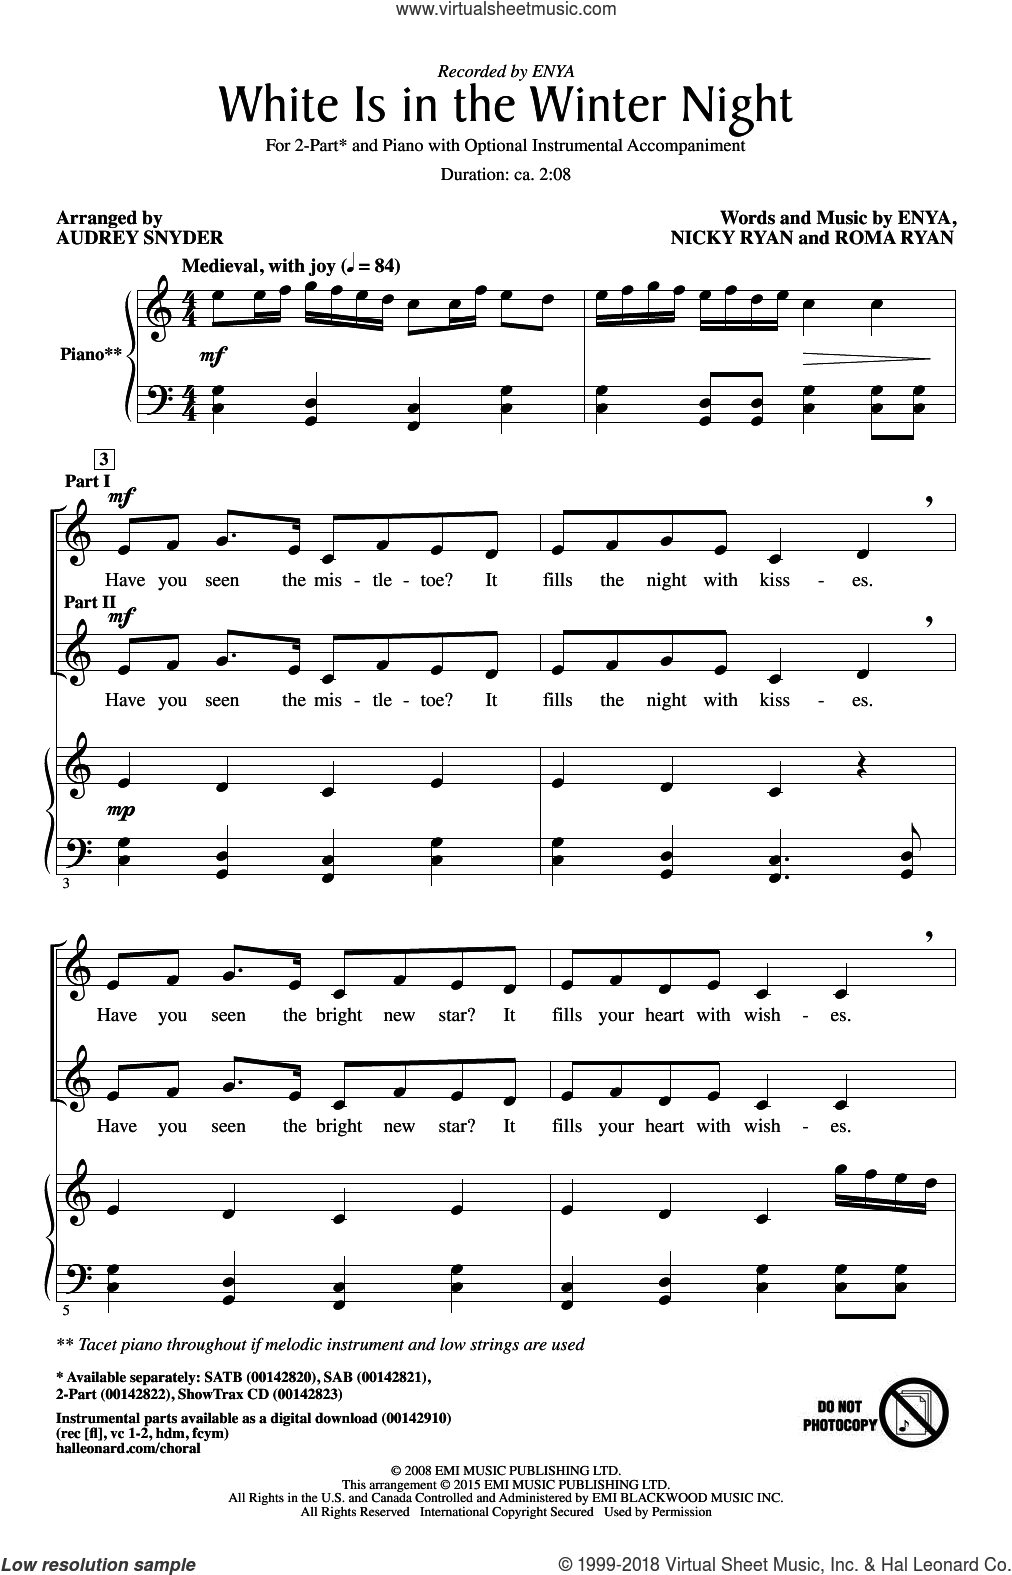 White Is In The Winter Night sheet music for choir (duets) by Audrey Snyder and Enya, Christmas carol score, intermediate duet. Score Image Preview.